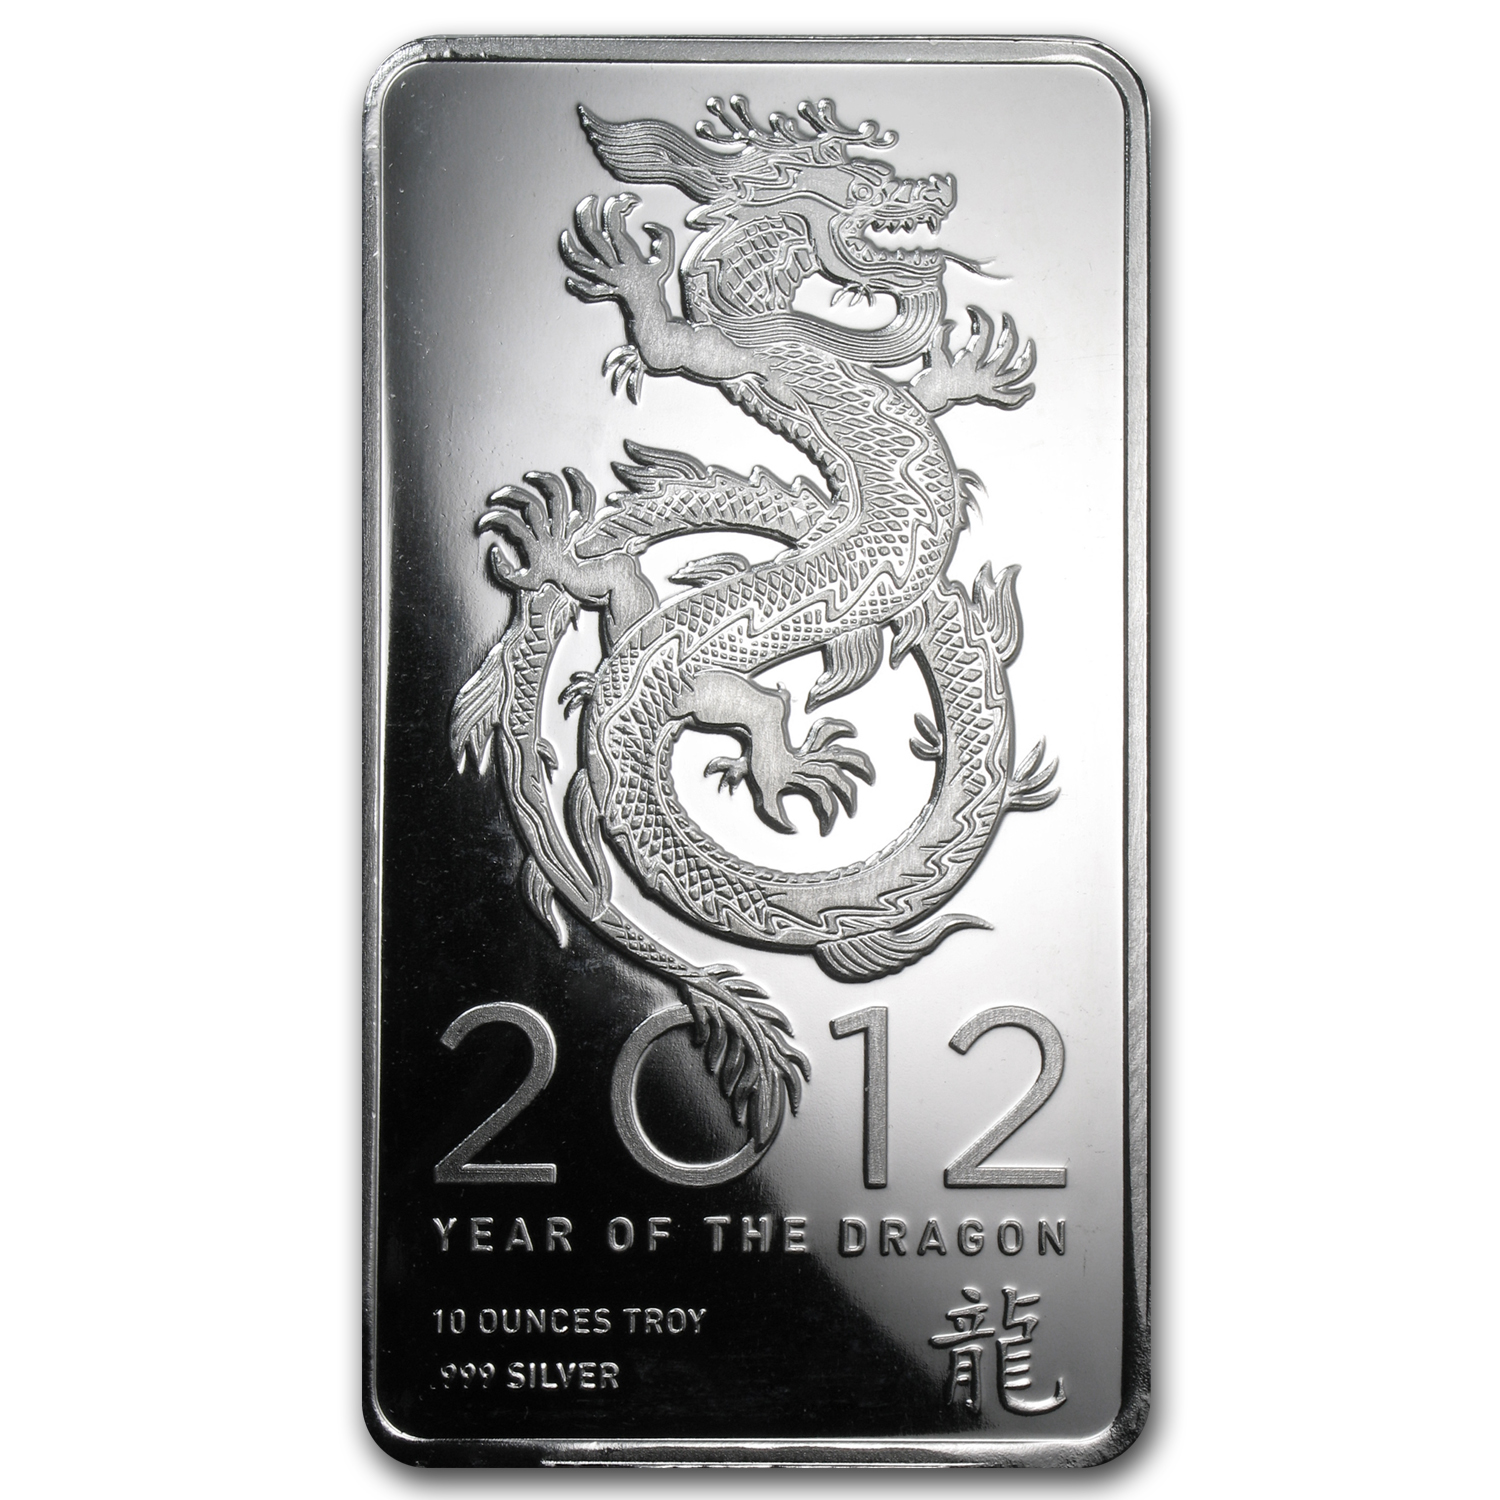 10 oz Silver Bar - 2012 Year of the Dragon